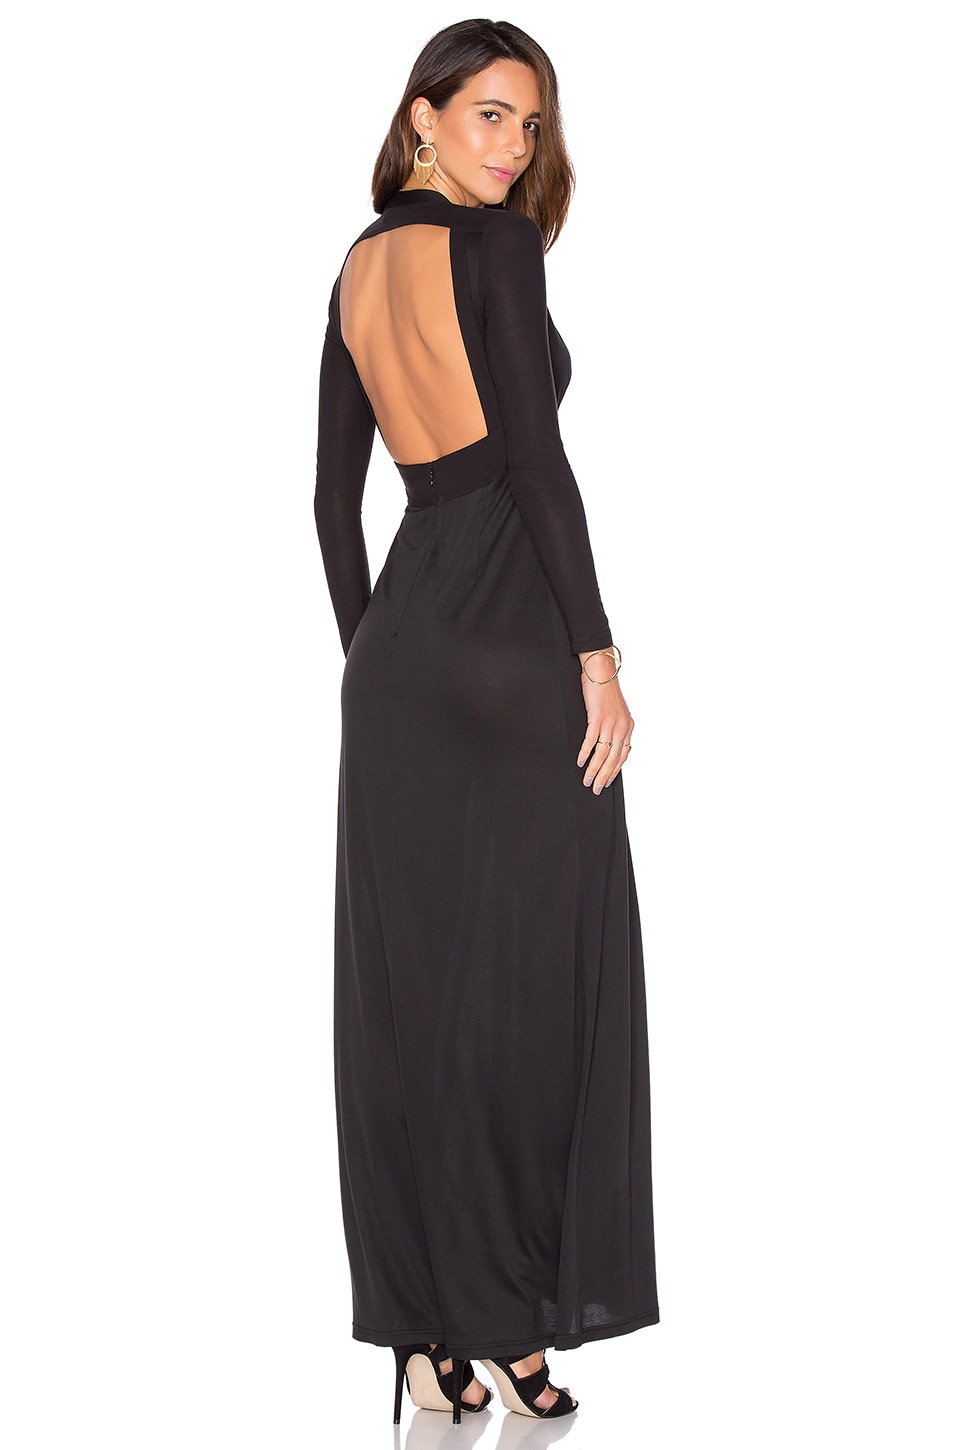 SAU Zara Gown in Black